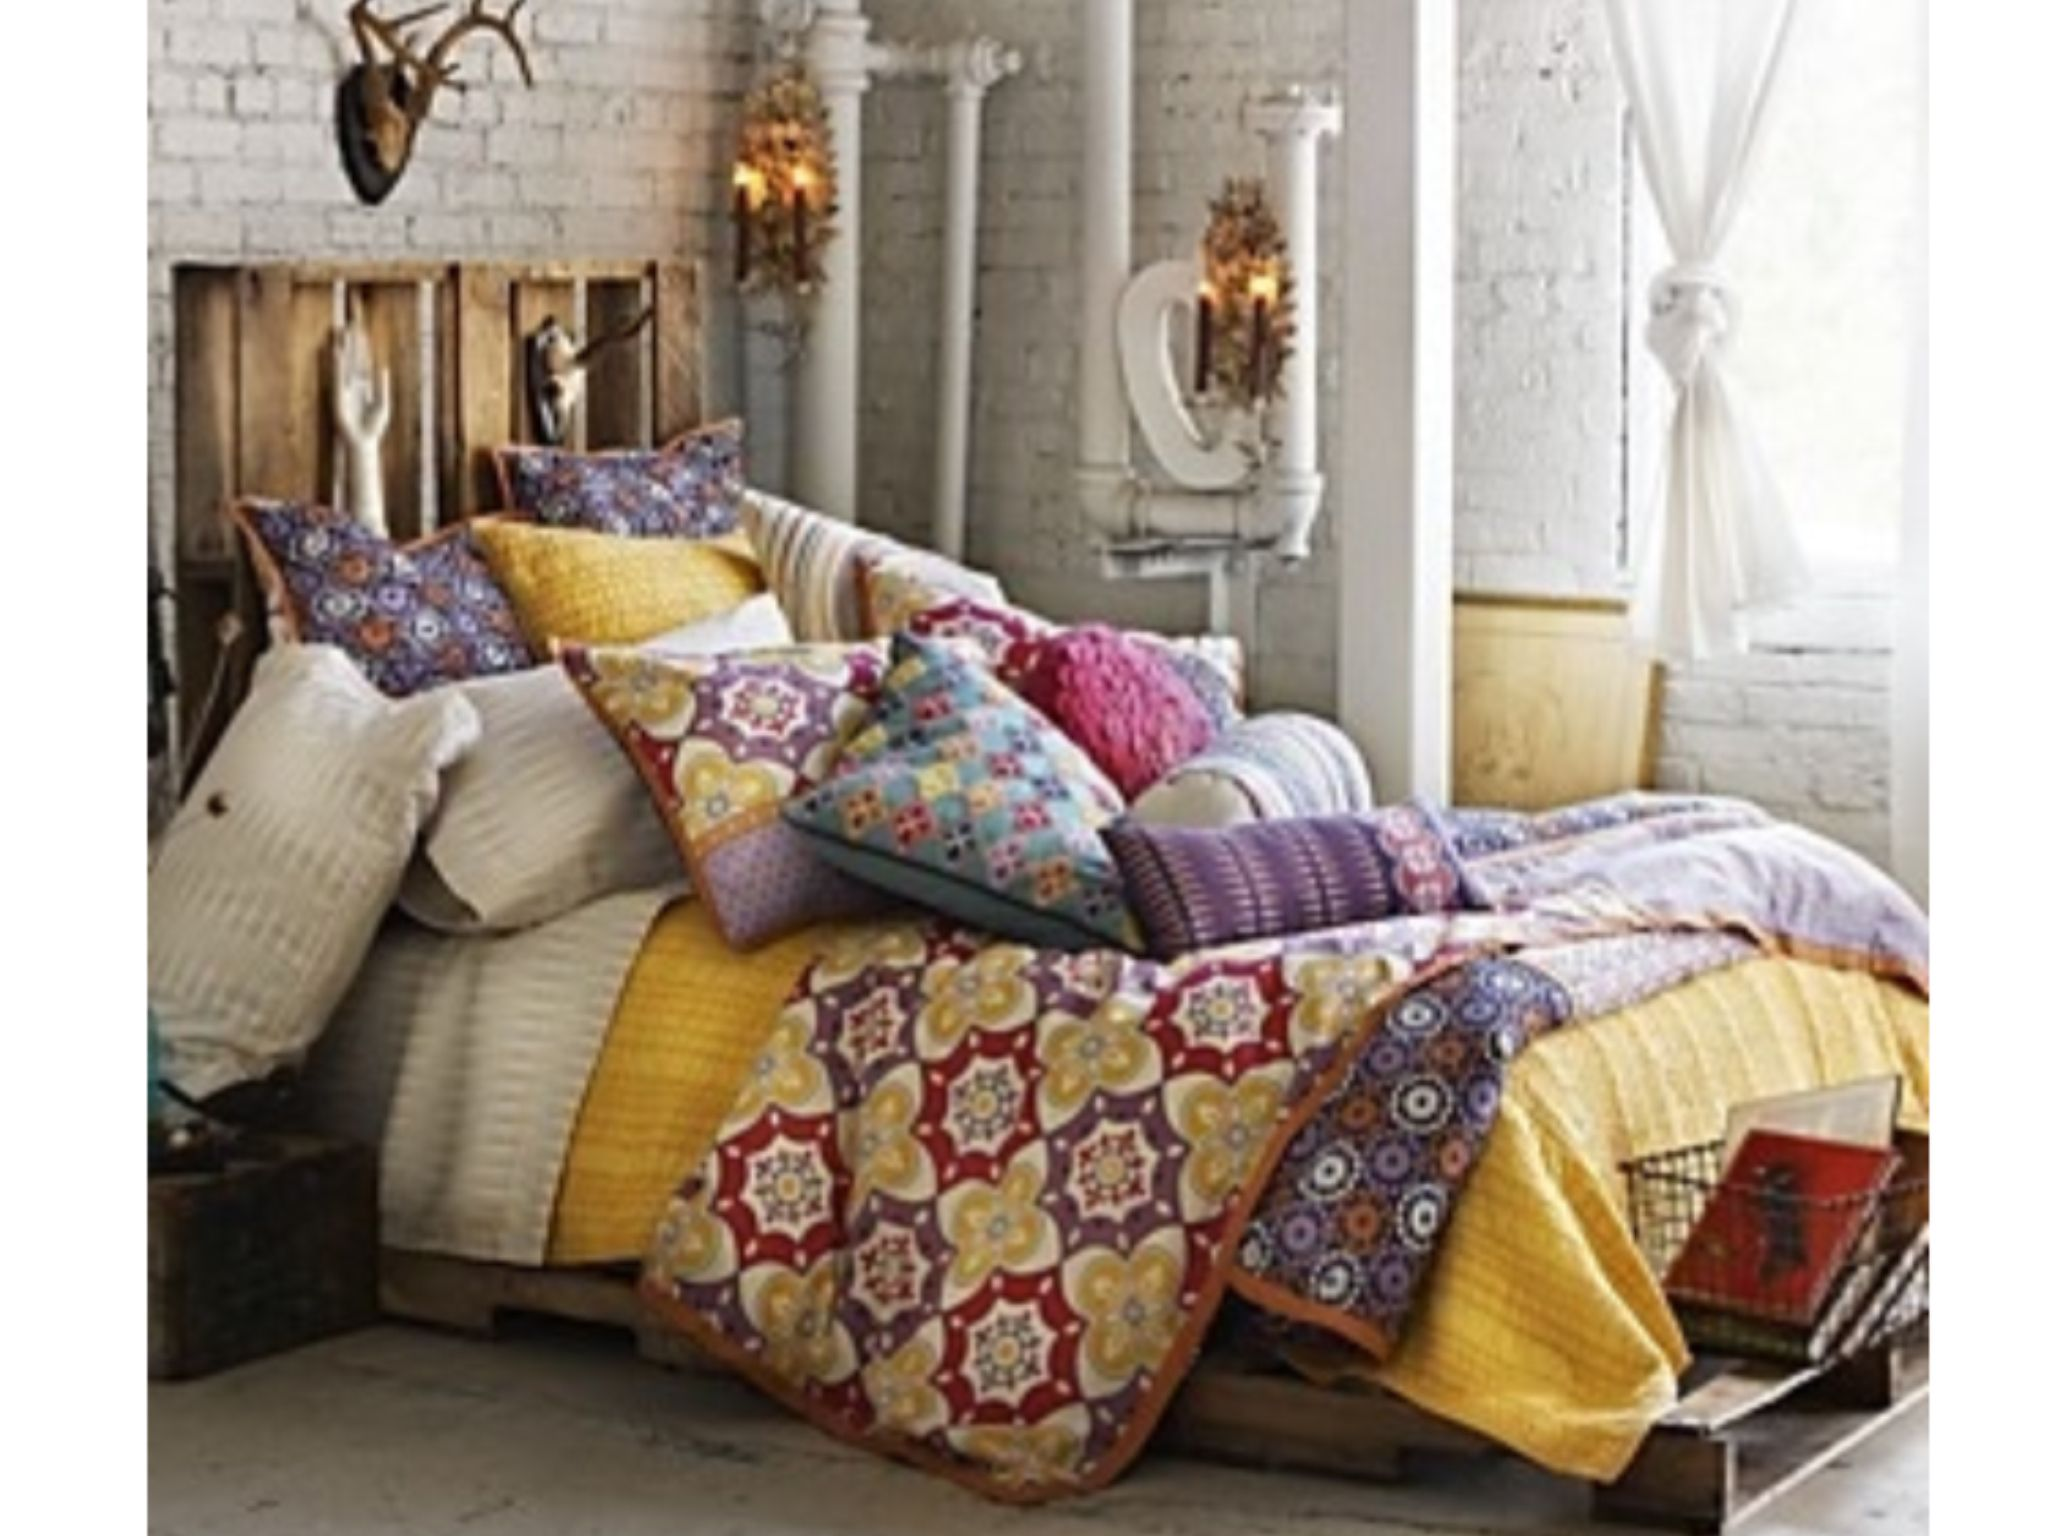 bohemian bedroom - Bohemian Bedroom Design